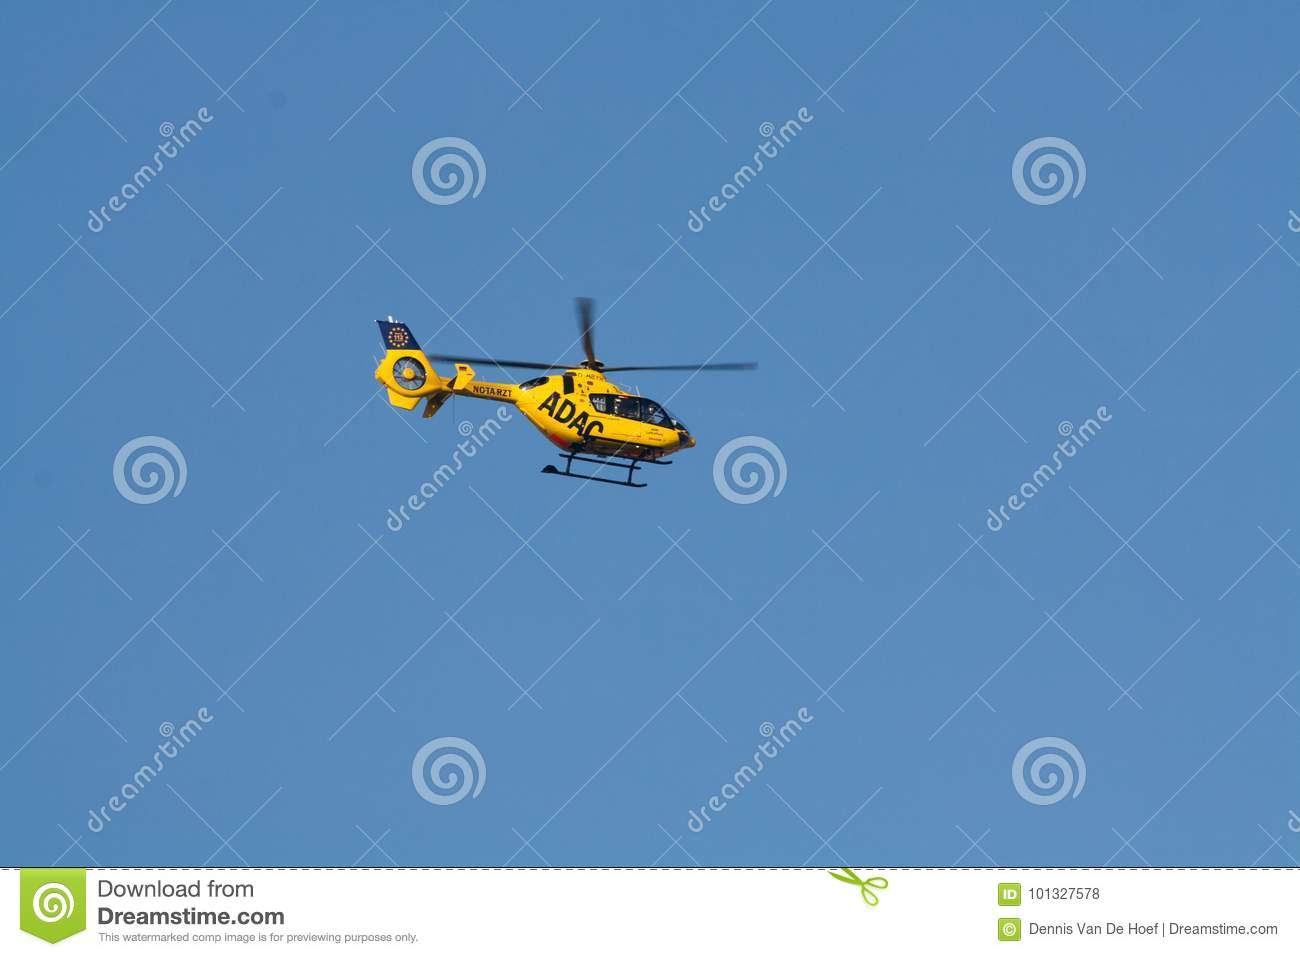 Berlin - 30.09.2017: Rescue helicopter of ADAC, Christoph 31 sea. Flight, outdoors.